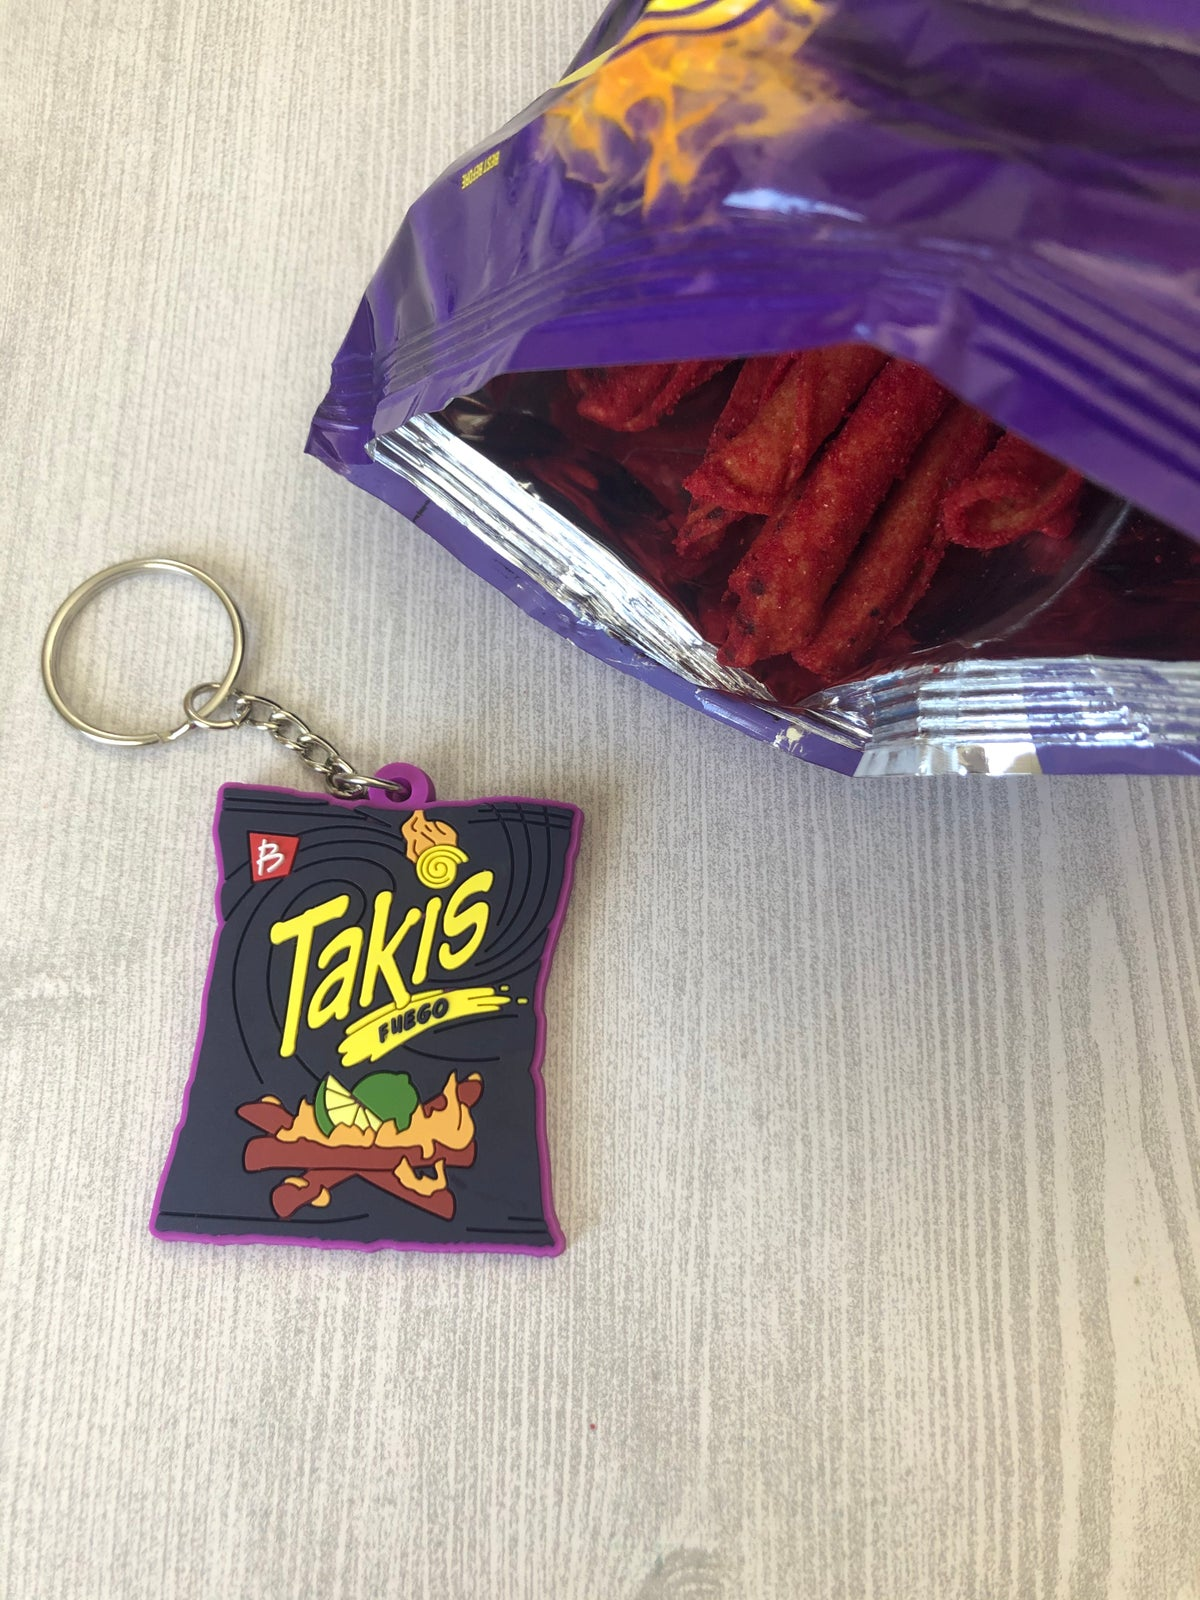 Takis Product